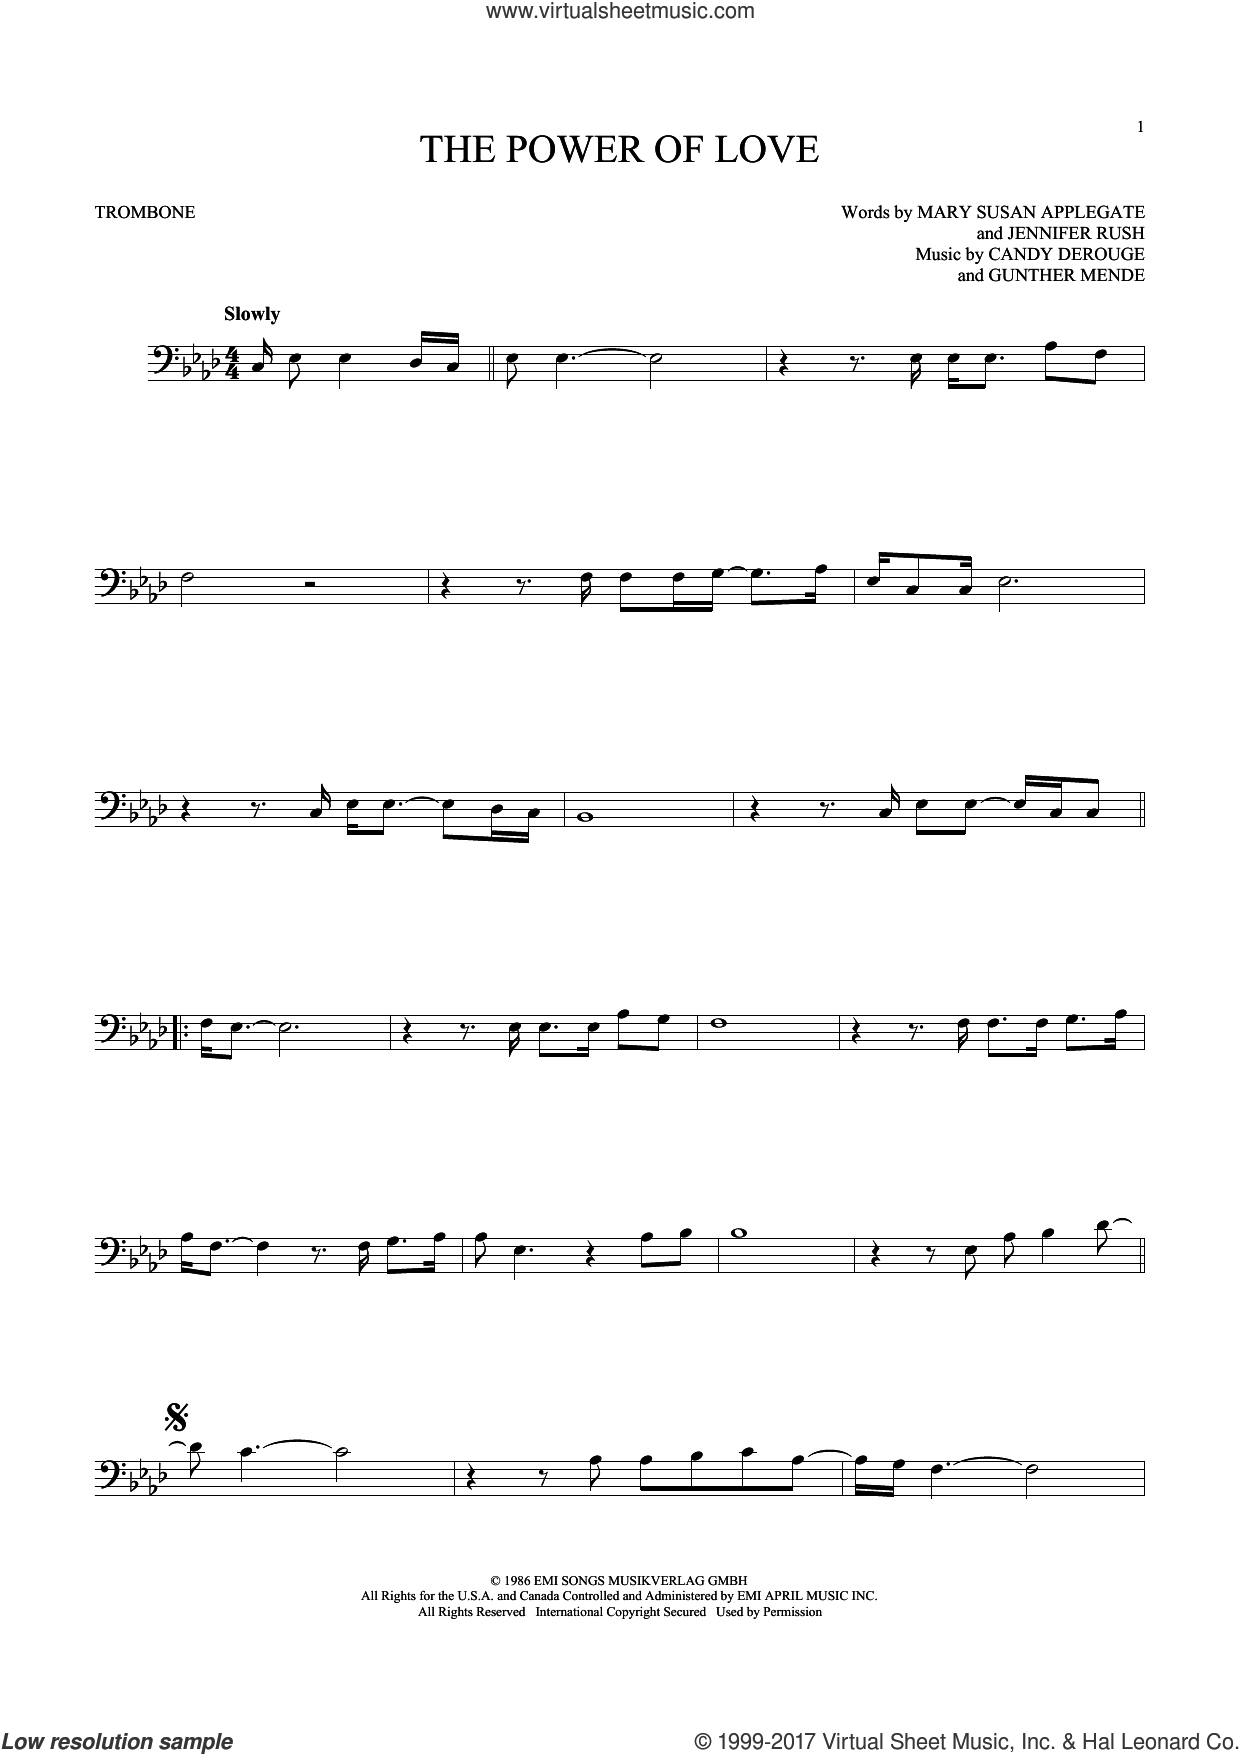 The Power Of Love sheet music for trombone solo by Air Supply, Celine Dion, Laura Brannigan, Candy Derouge, Gunther Mende, Jennifer Rush and Mary Susan Applegate, intermediate skill level